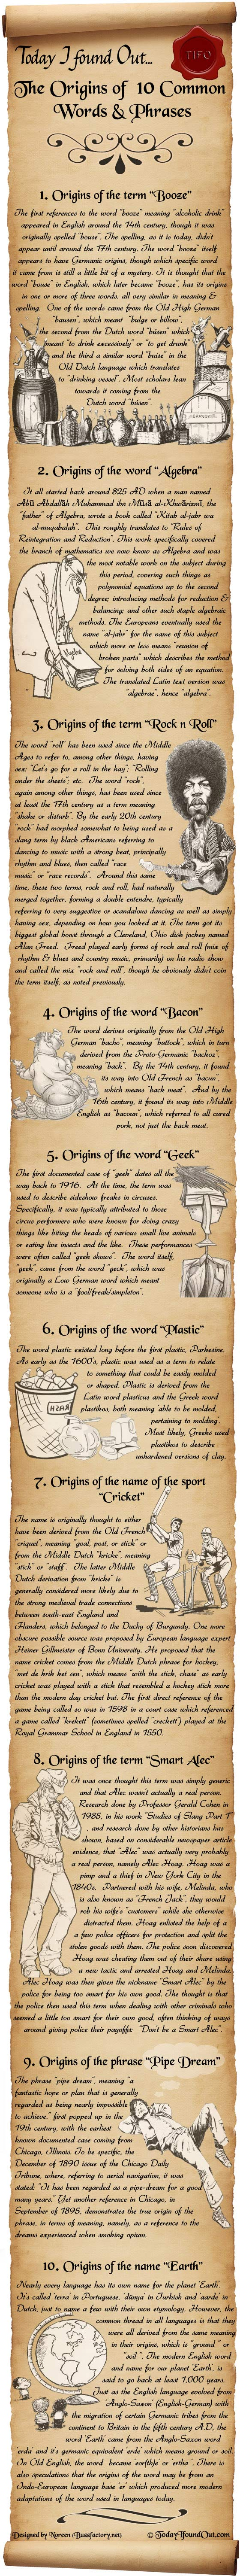 The Origins of 10 Common Words and Phrases Infographic